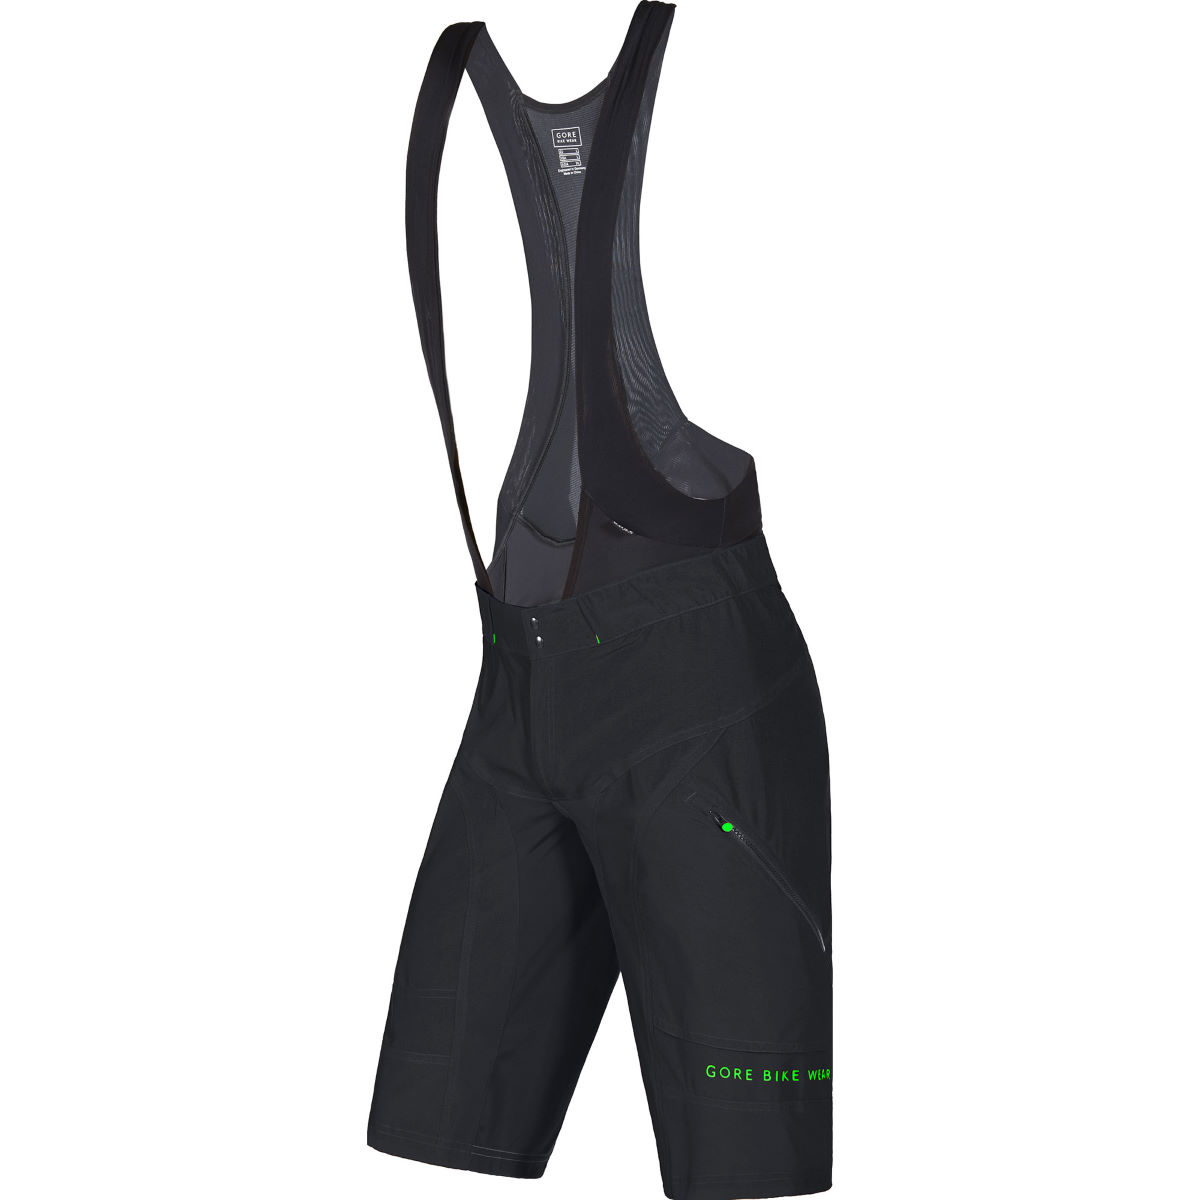 Image of Cuissard court à bretelles Gore Bike Wear Power Trail + (2 en 1) - S